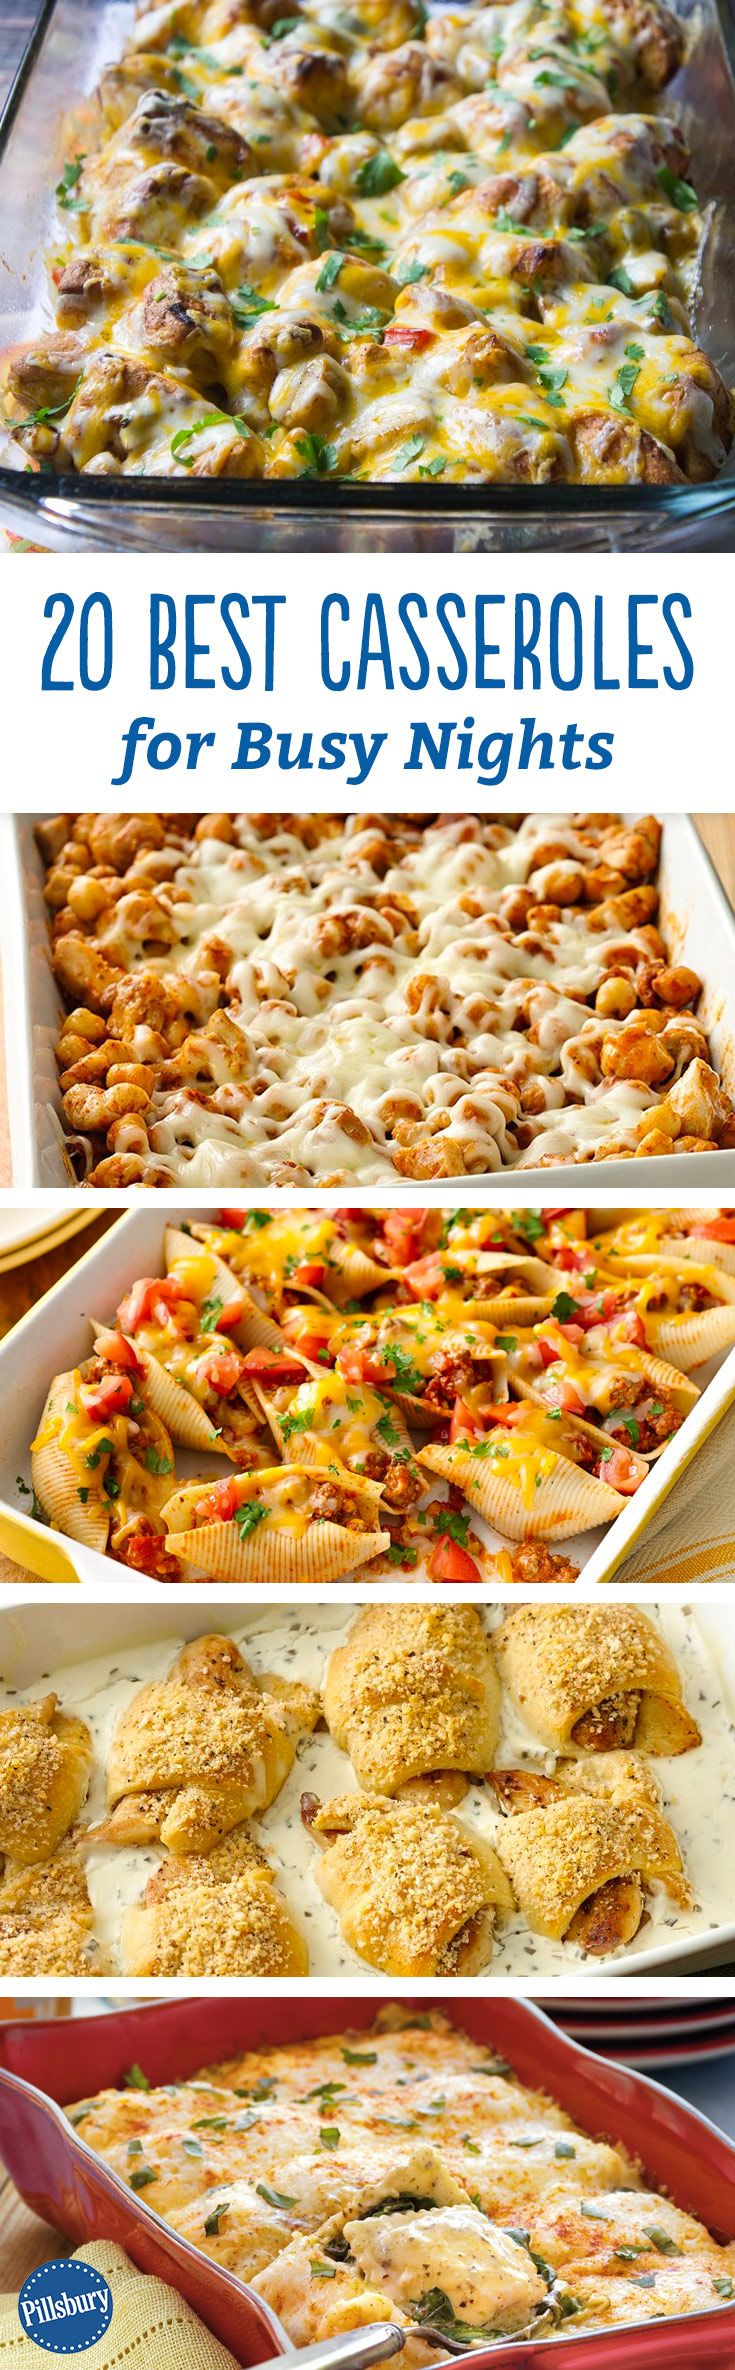 Dinner just got 20 times easier! Quick prep is the name of the game for these…